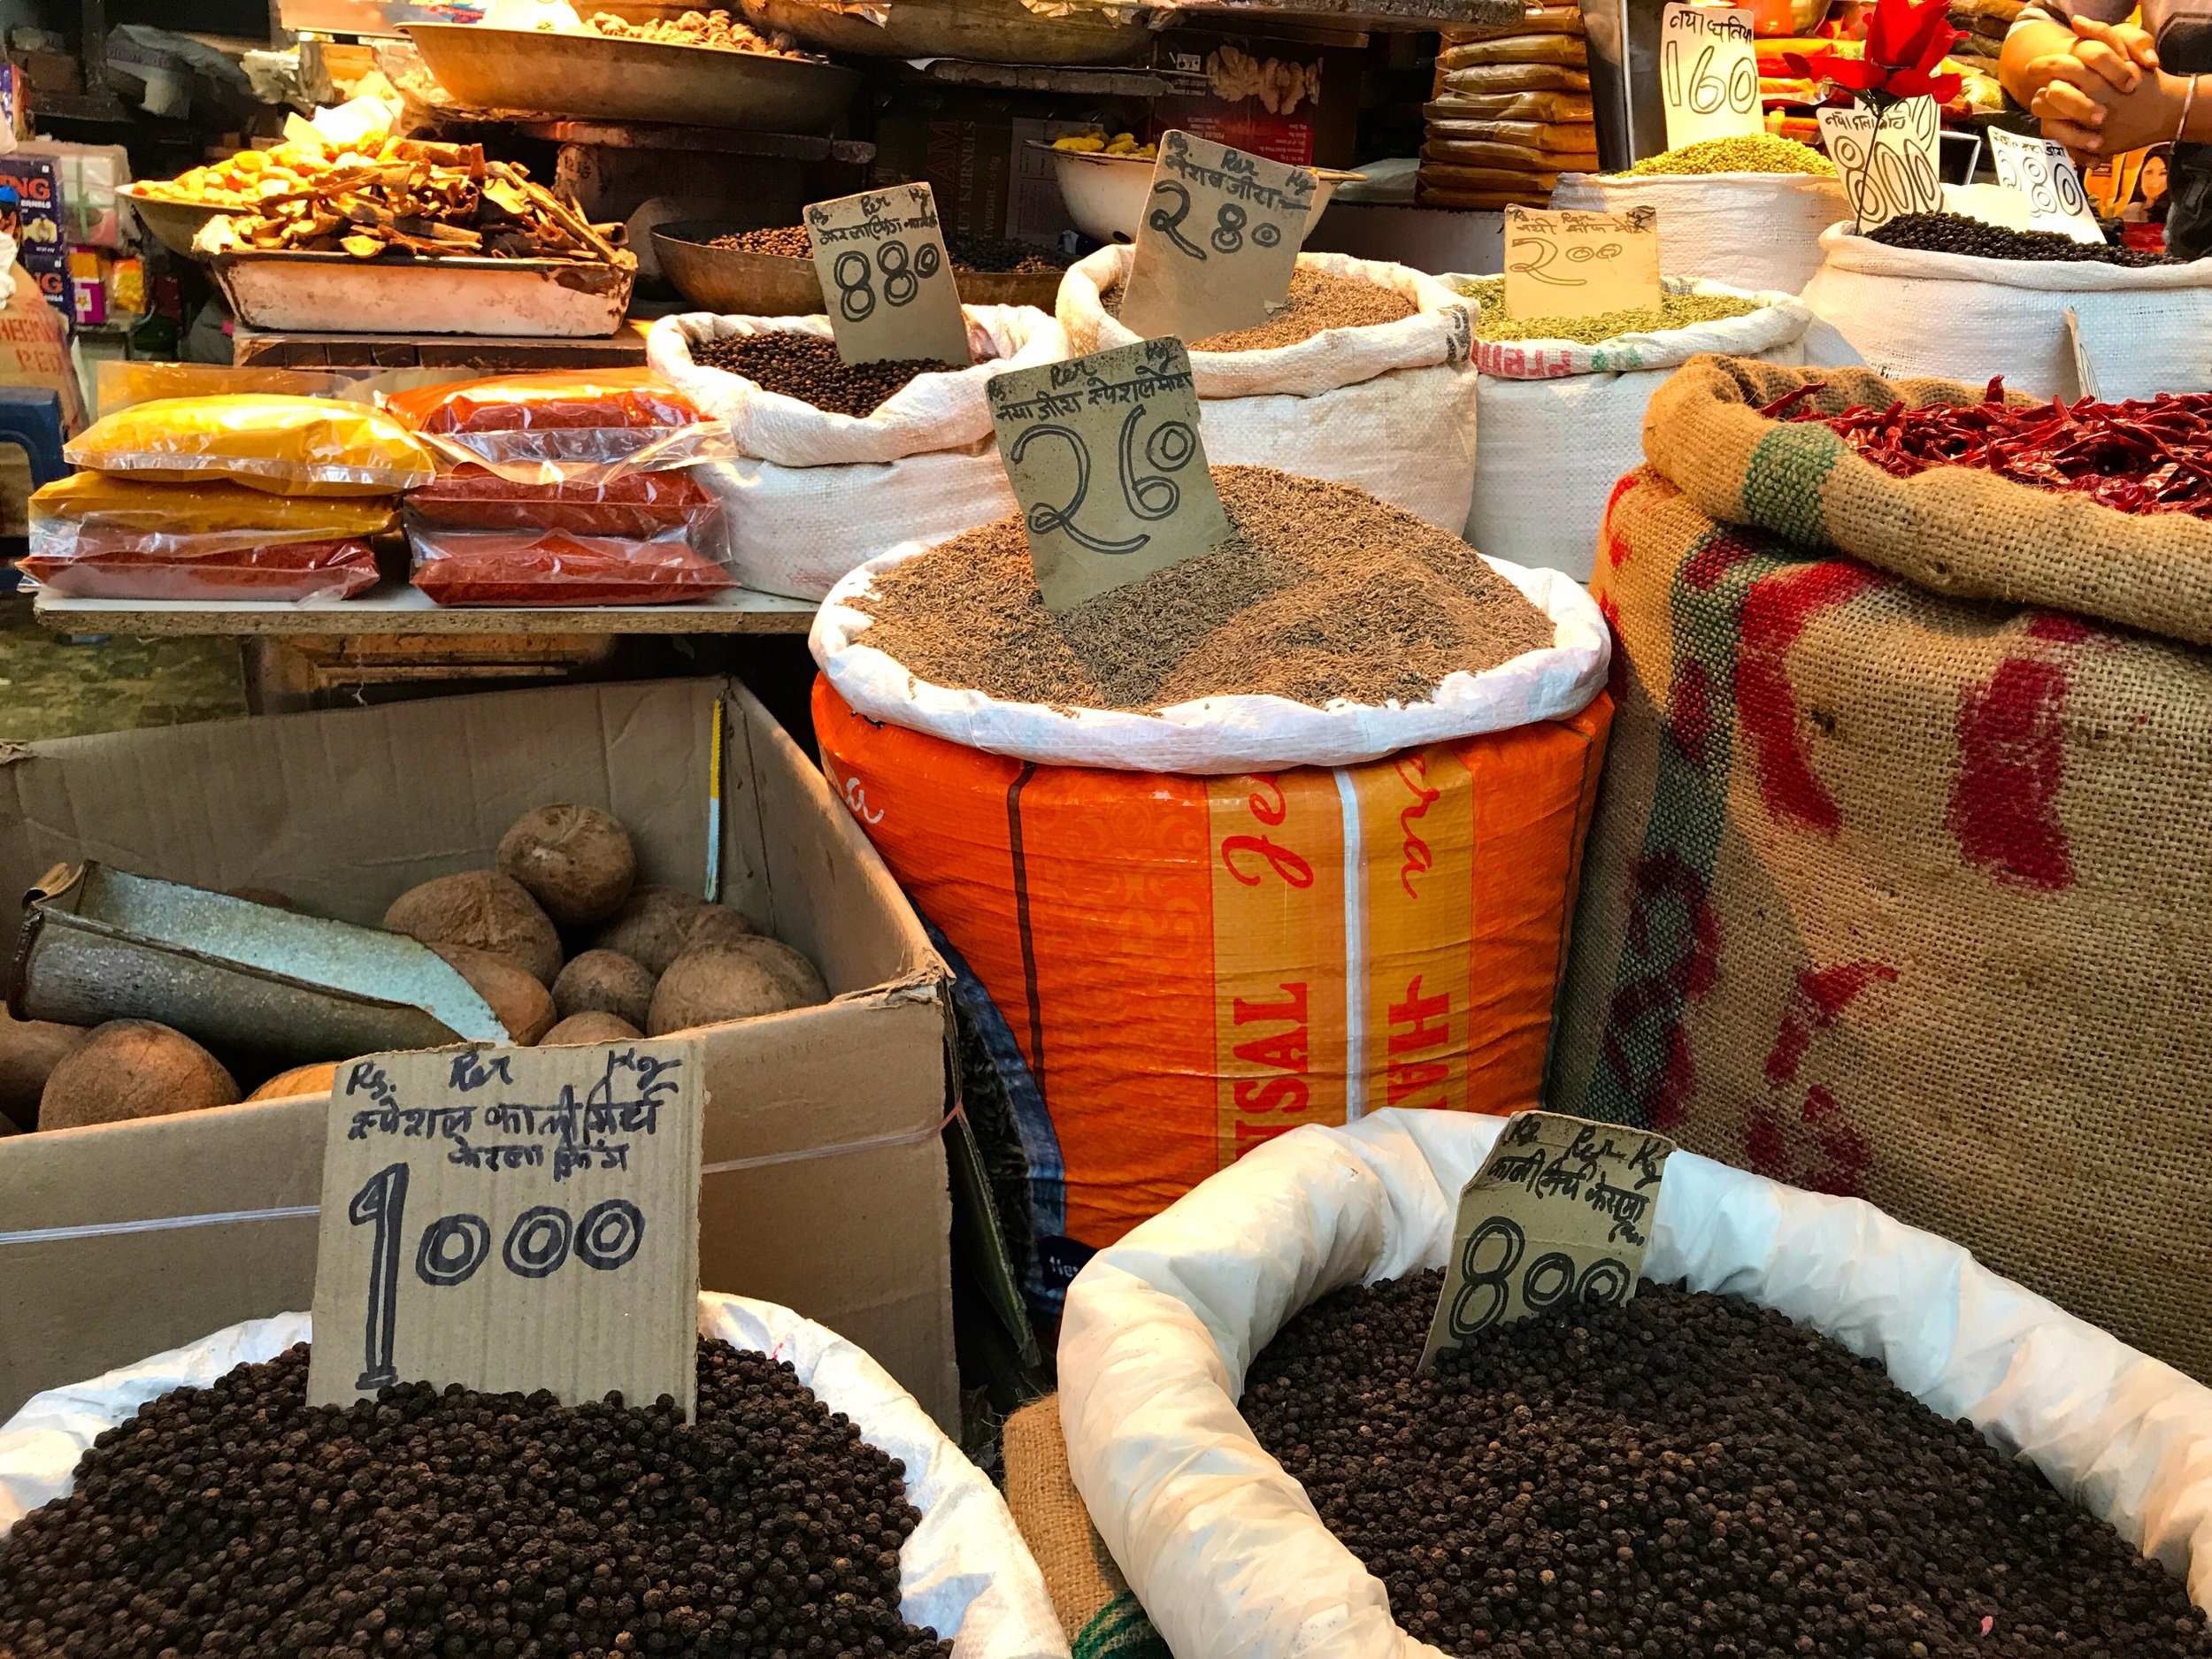 spices in Chawdni Chowk market, Dehli, India